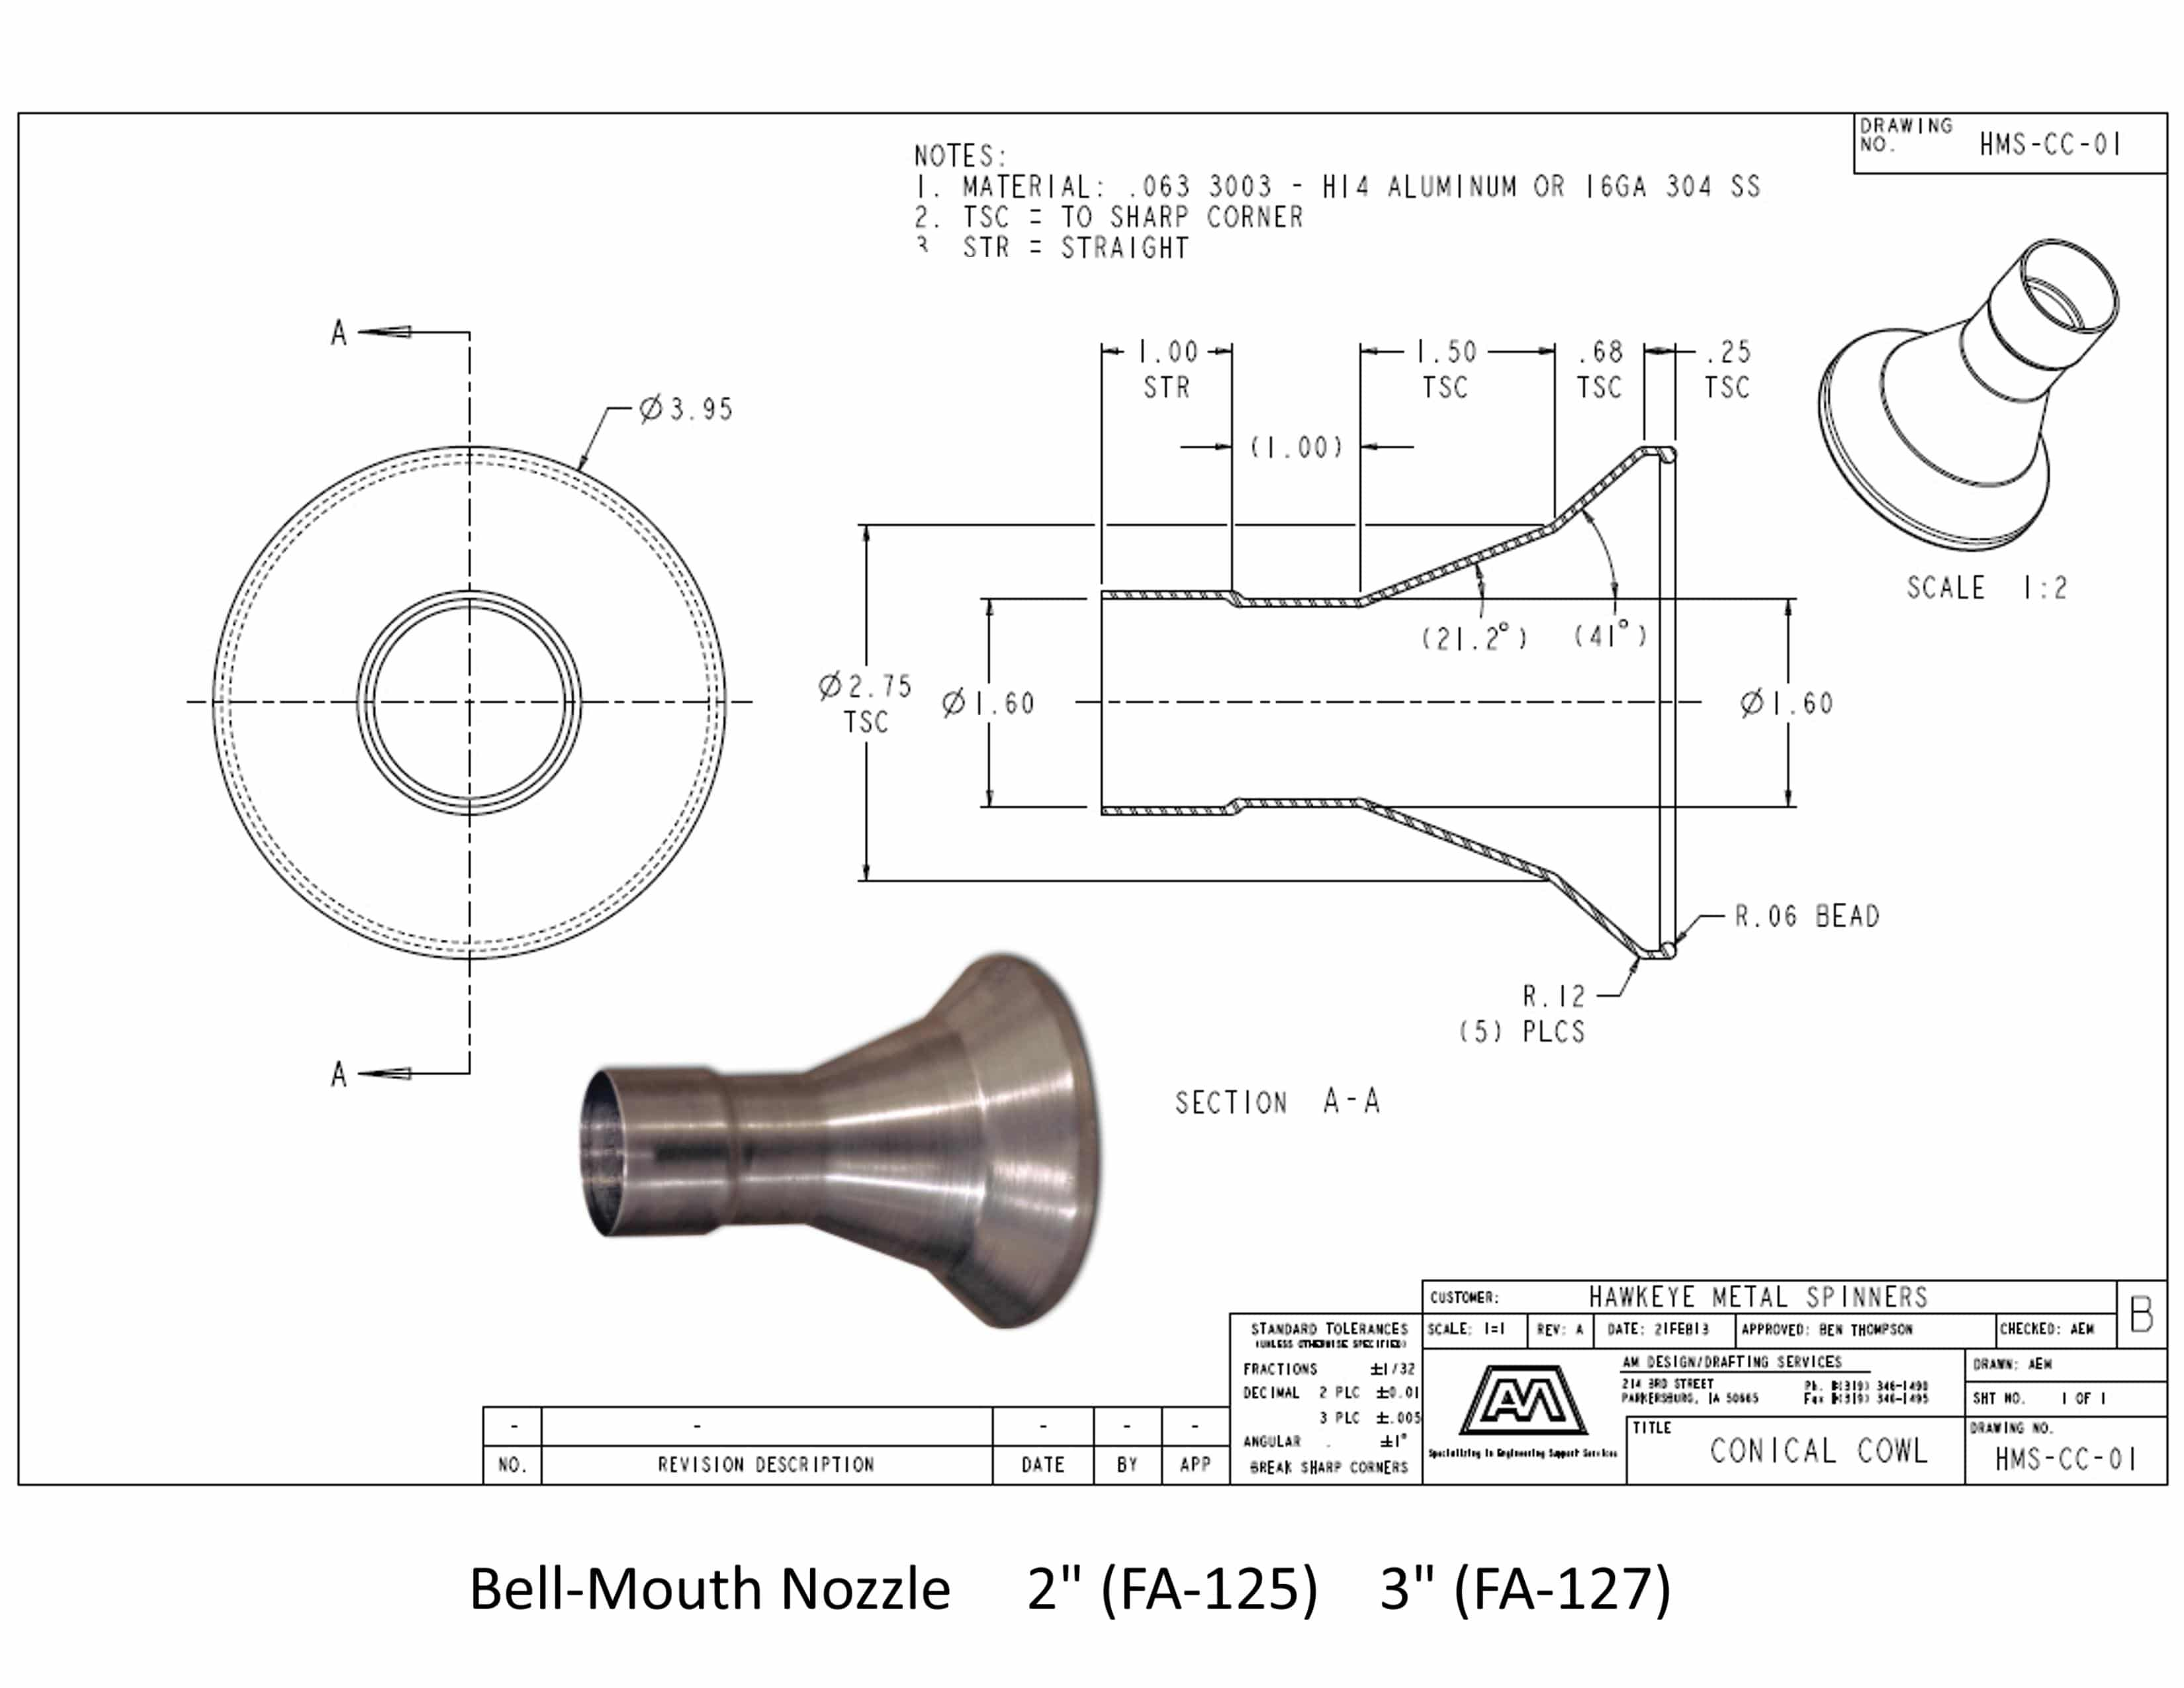 Bell-Mouth Nozzle | Fumex, Inc.